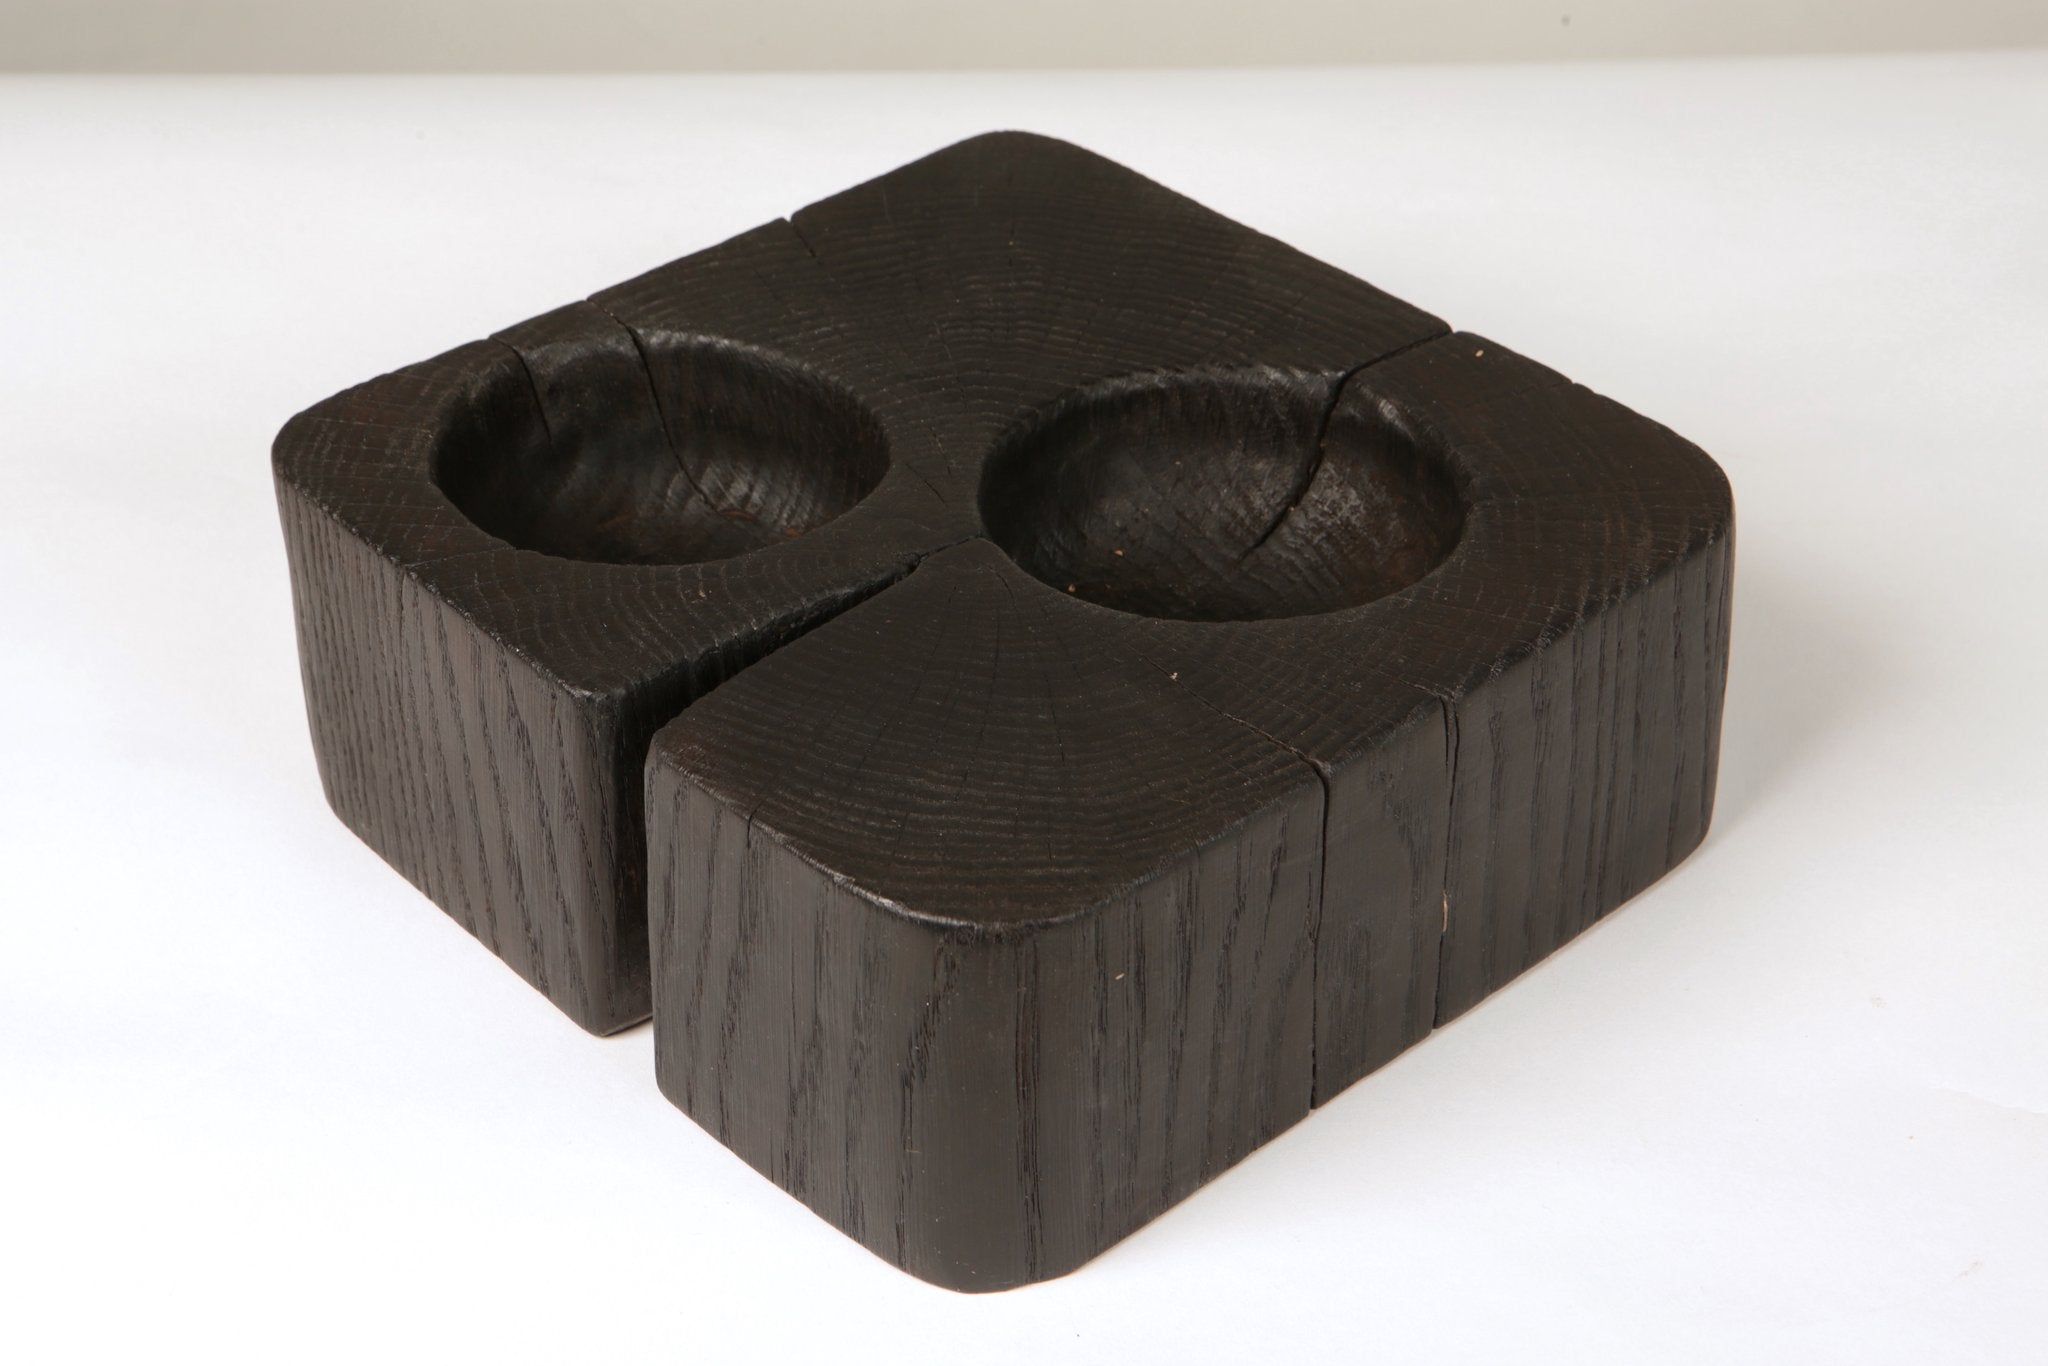 Oak wooden hand made bowl in black and has two bowls hand crafted inside